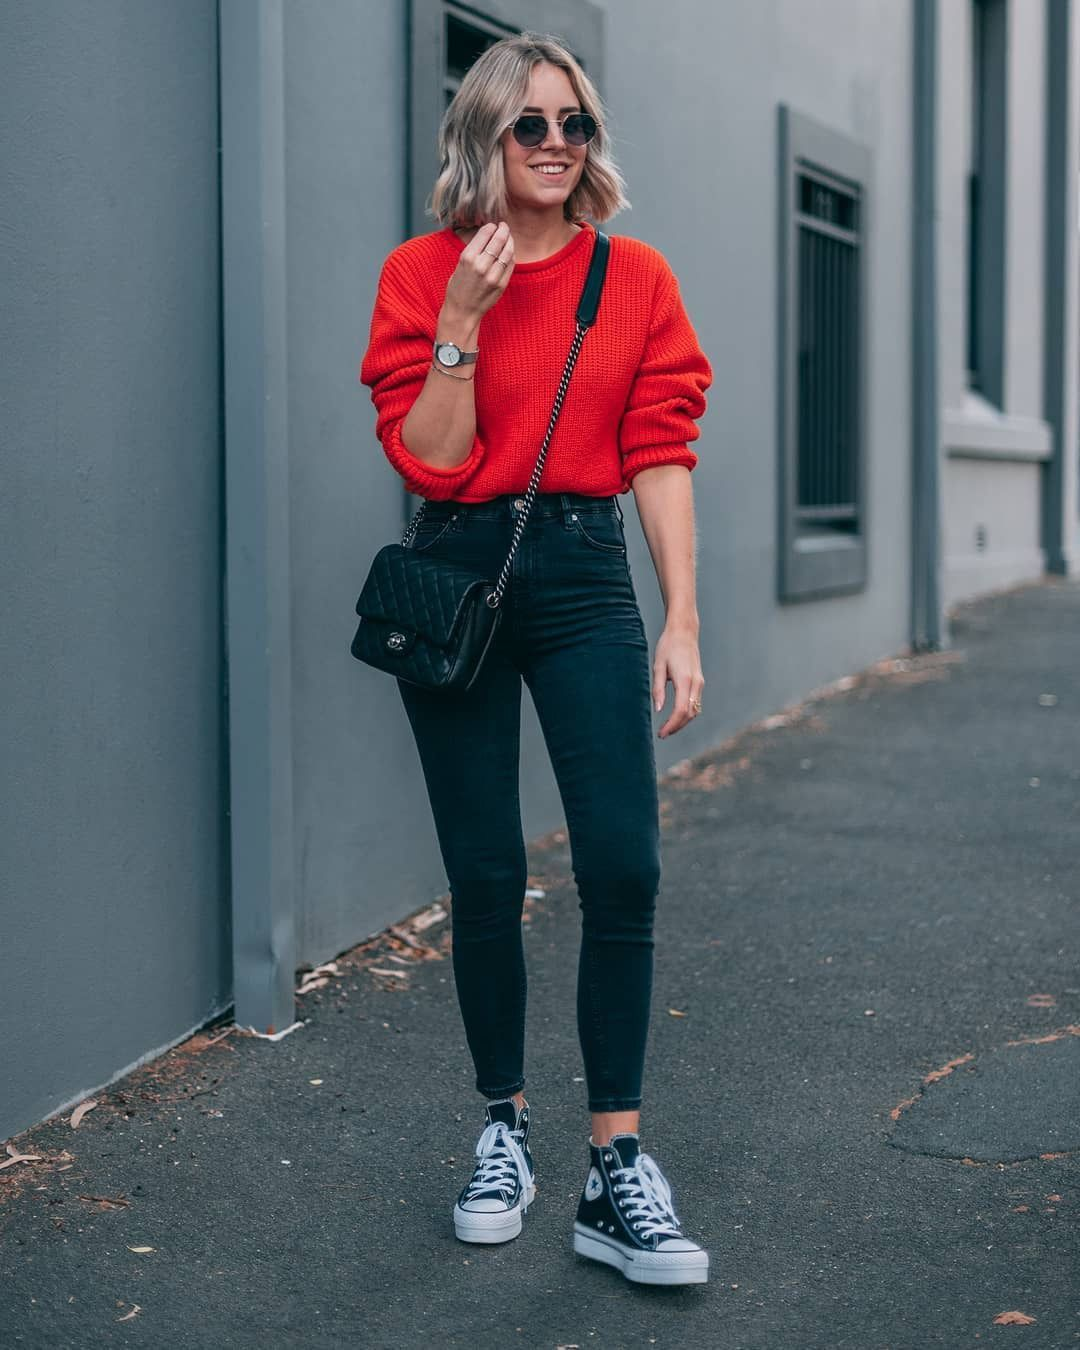 How to wear converse with skinny jeans!